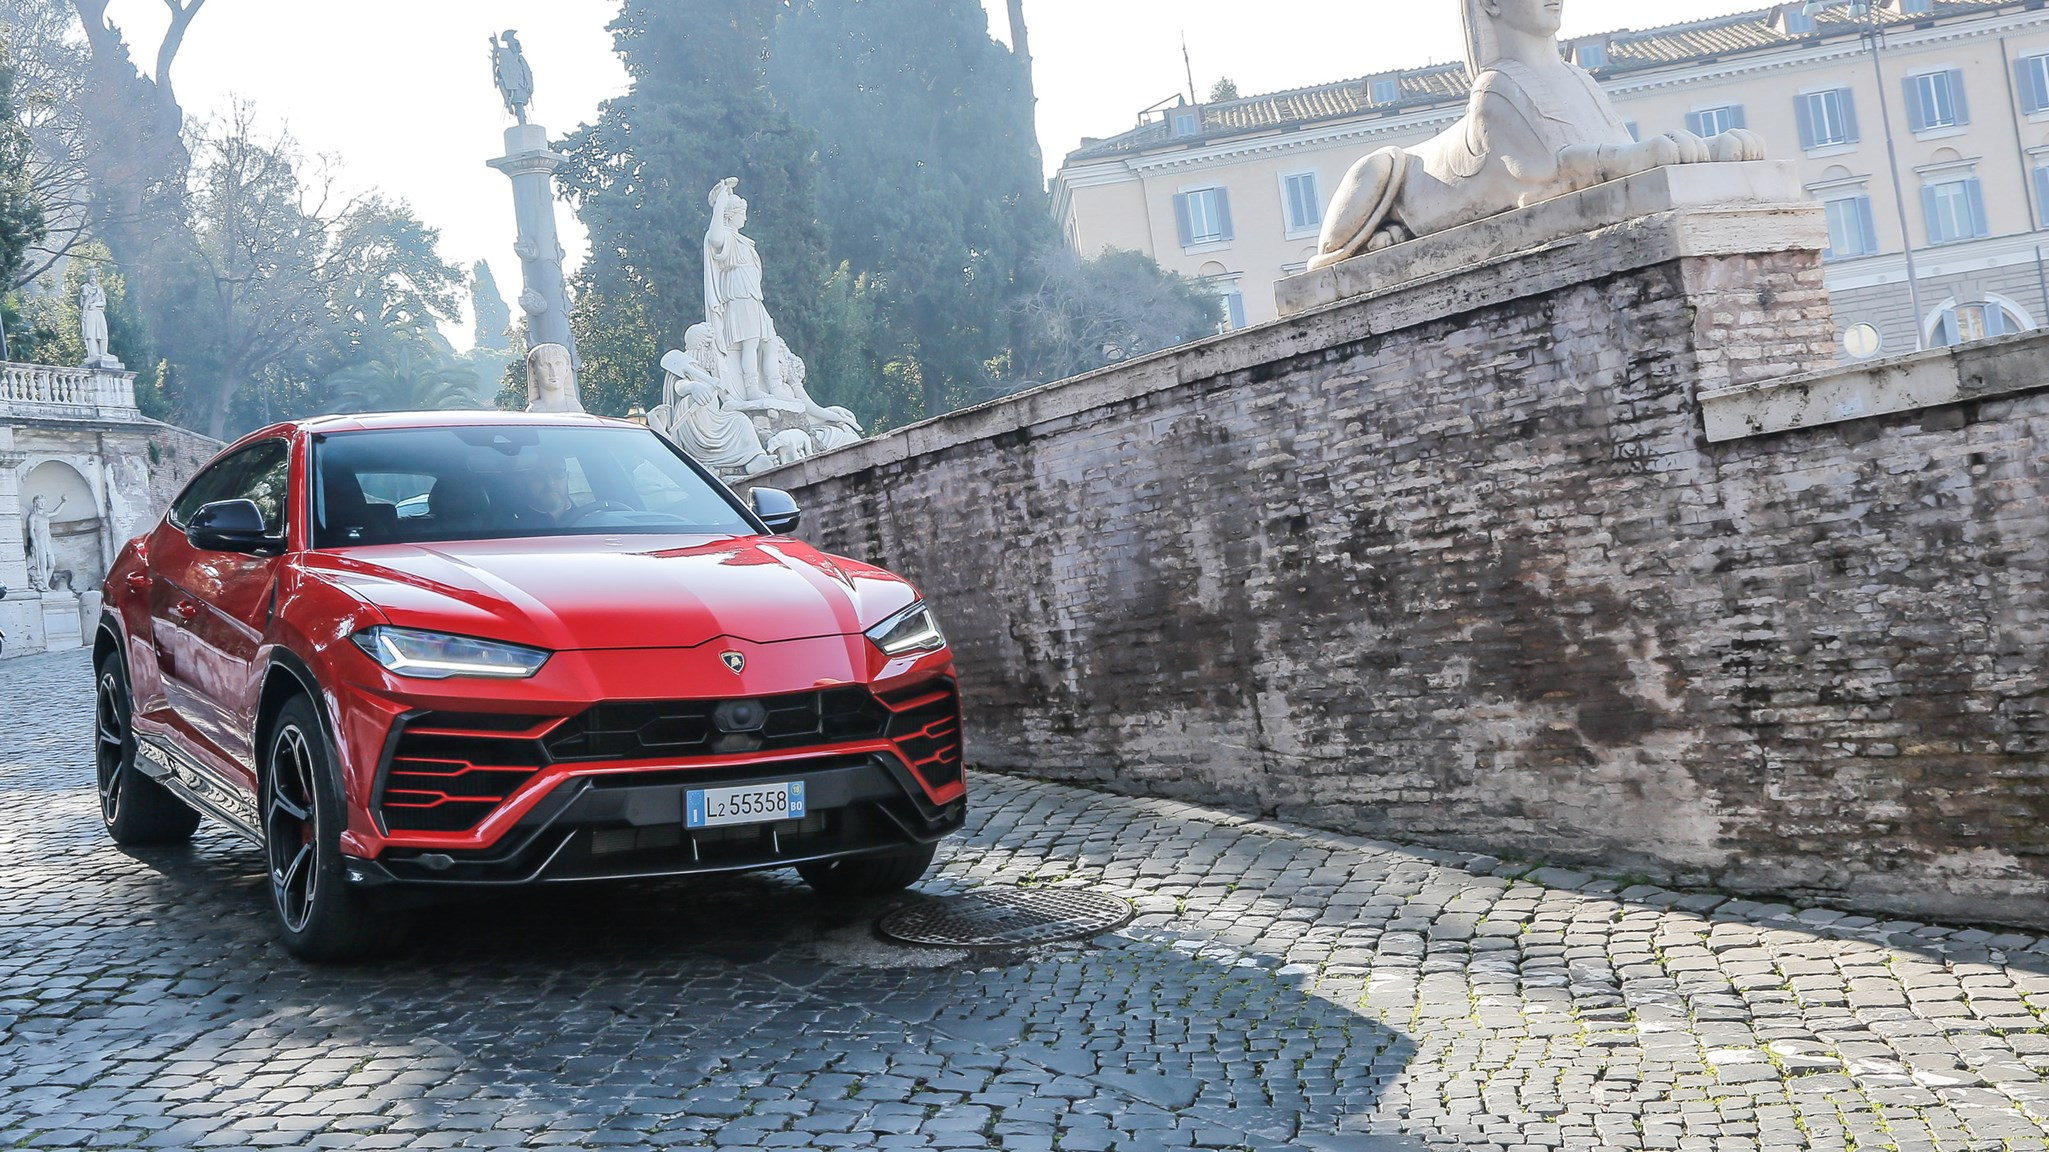 lamborghini urus suv uk review car magazinehot on the heels of the urus will be alternatives from rolls royce, aston martin and ferrari, so lamborghini needs to make its mark before the waters become